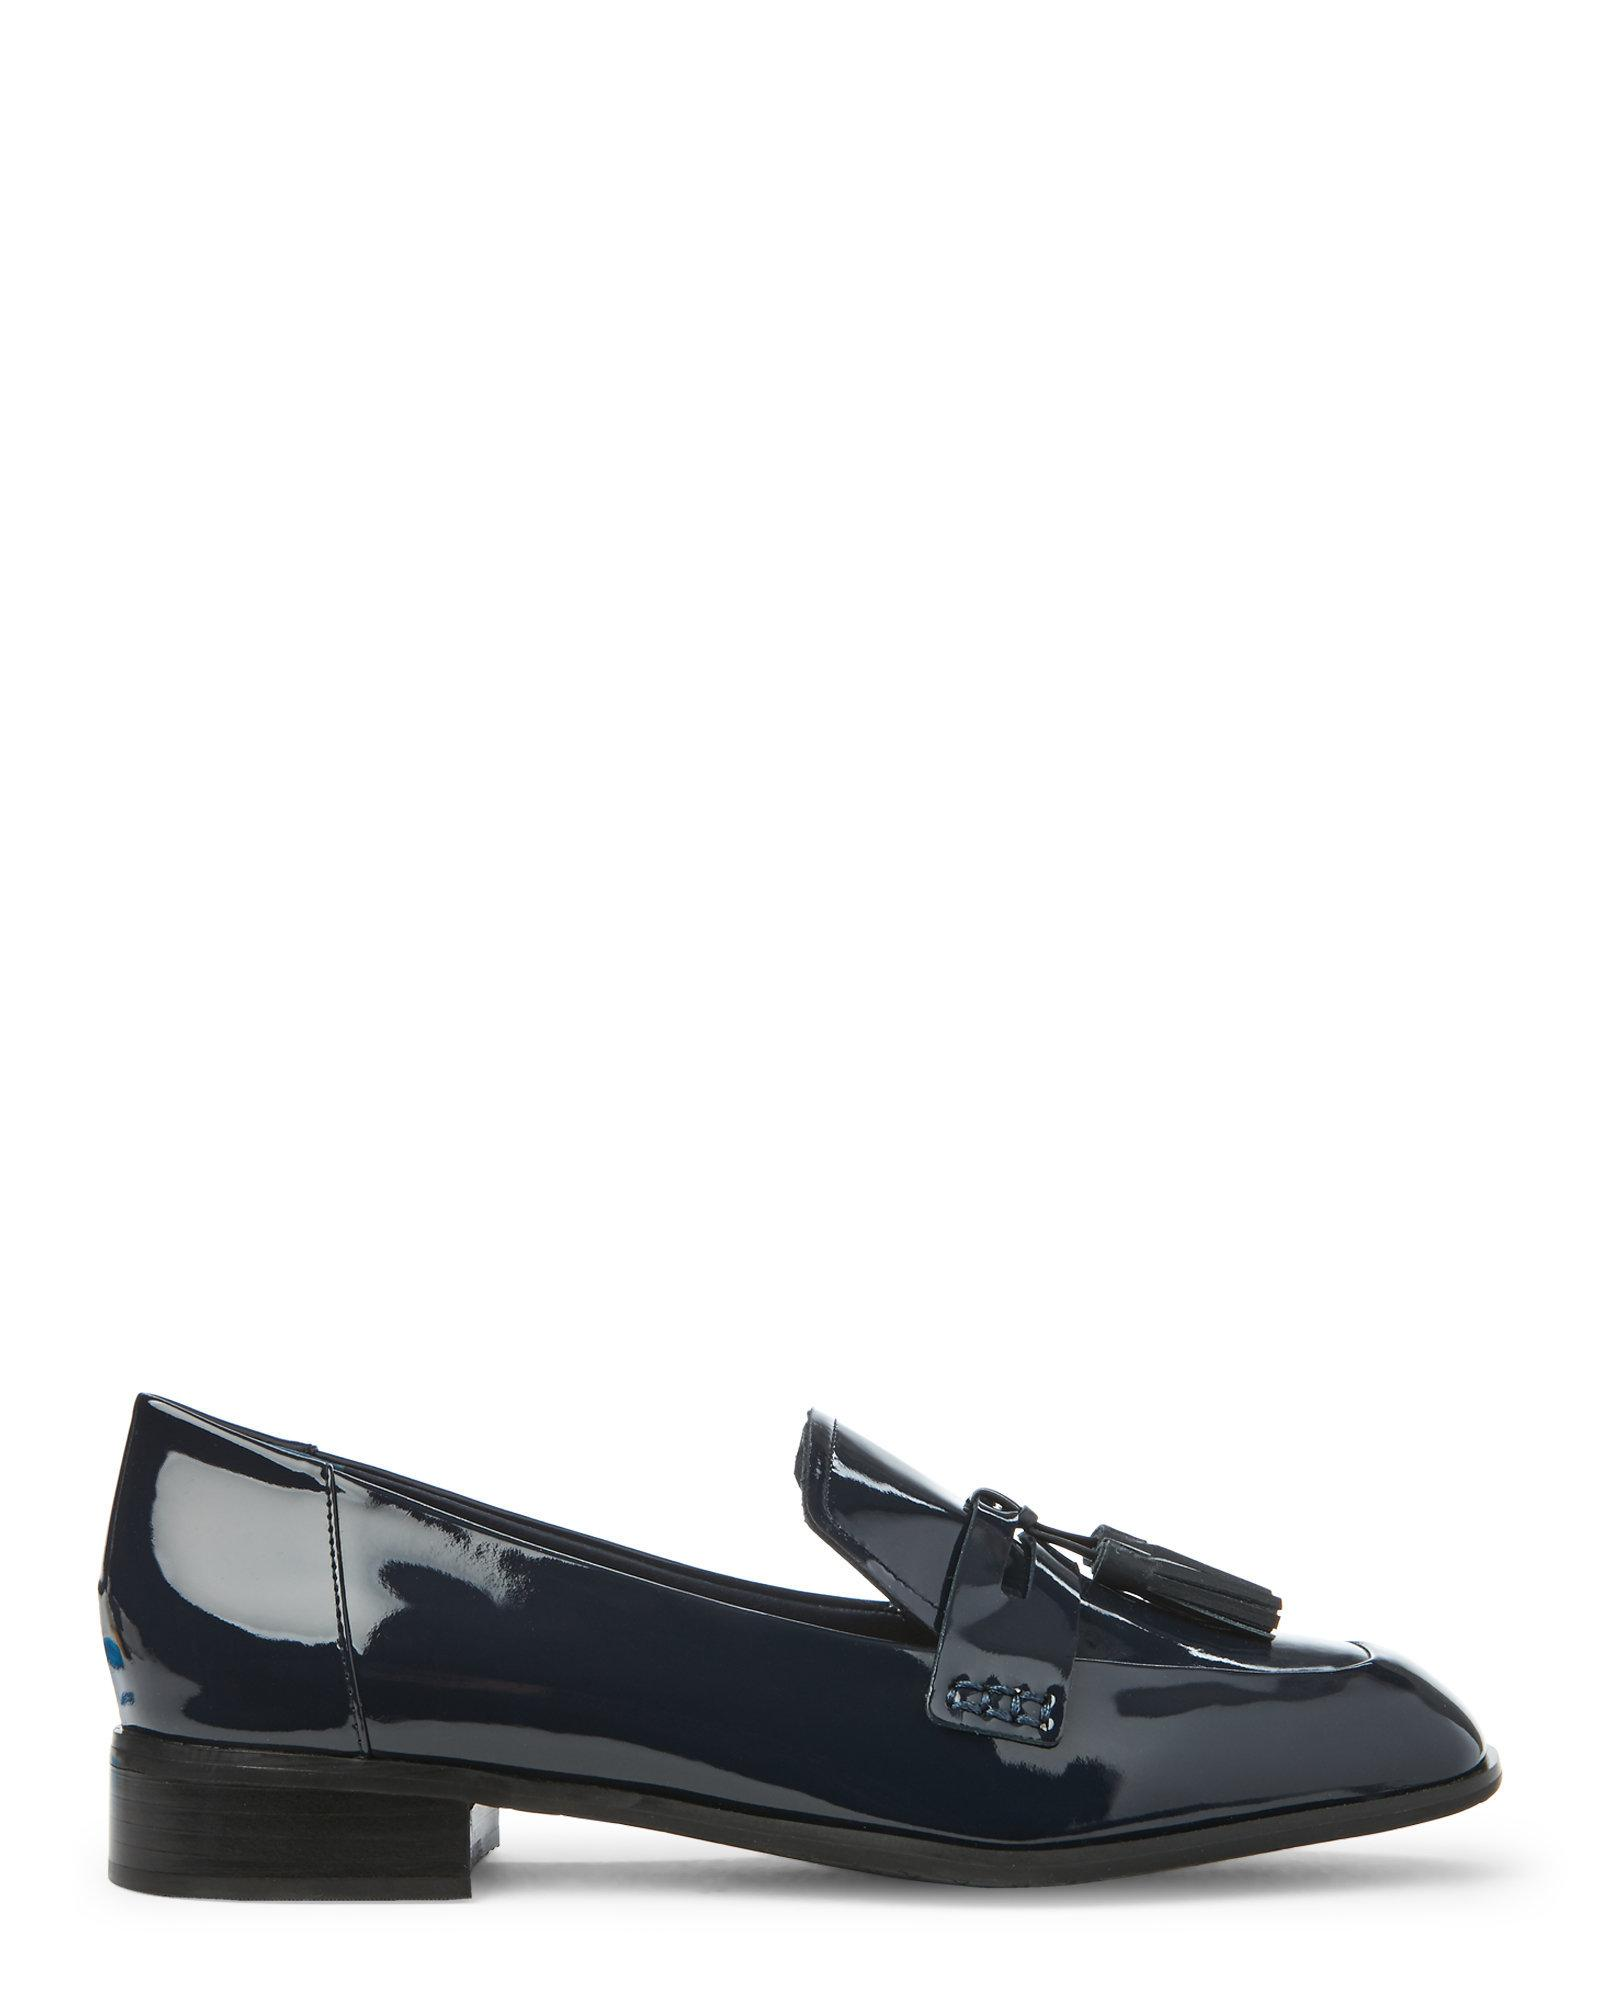 72cd13a83e6 Lyst - Tahari Deep Navy Tina Patent Loafers in Blue